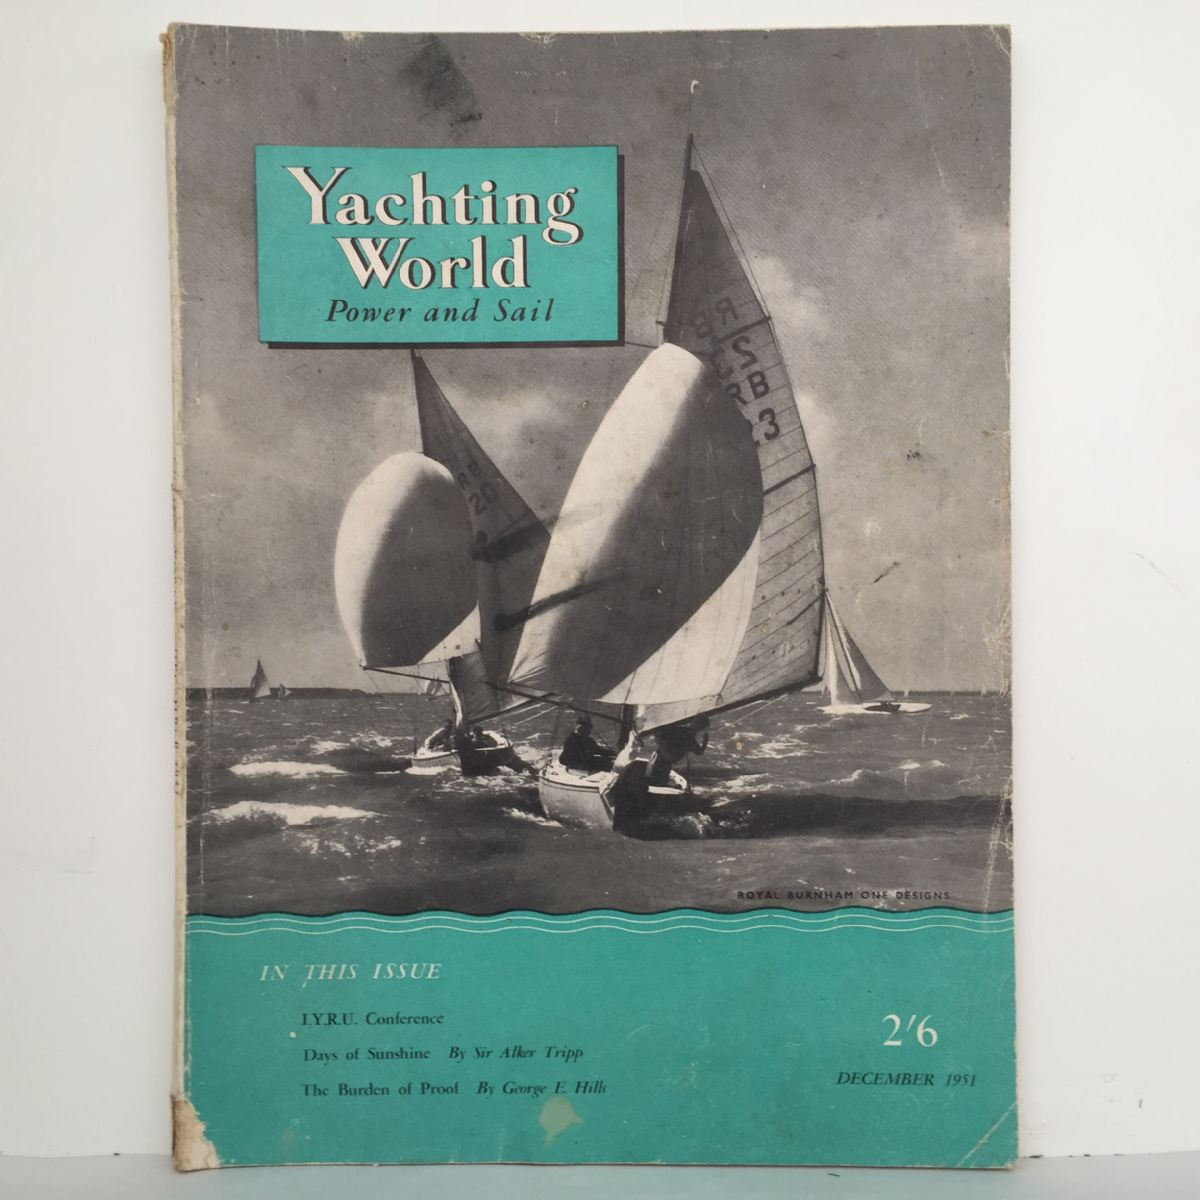 Yachting World Power and Sail Dec 1951